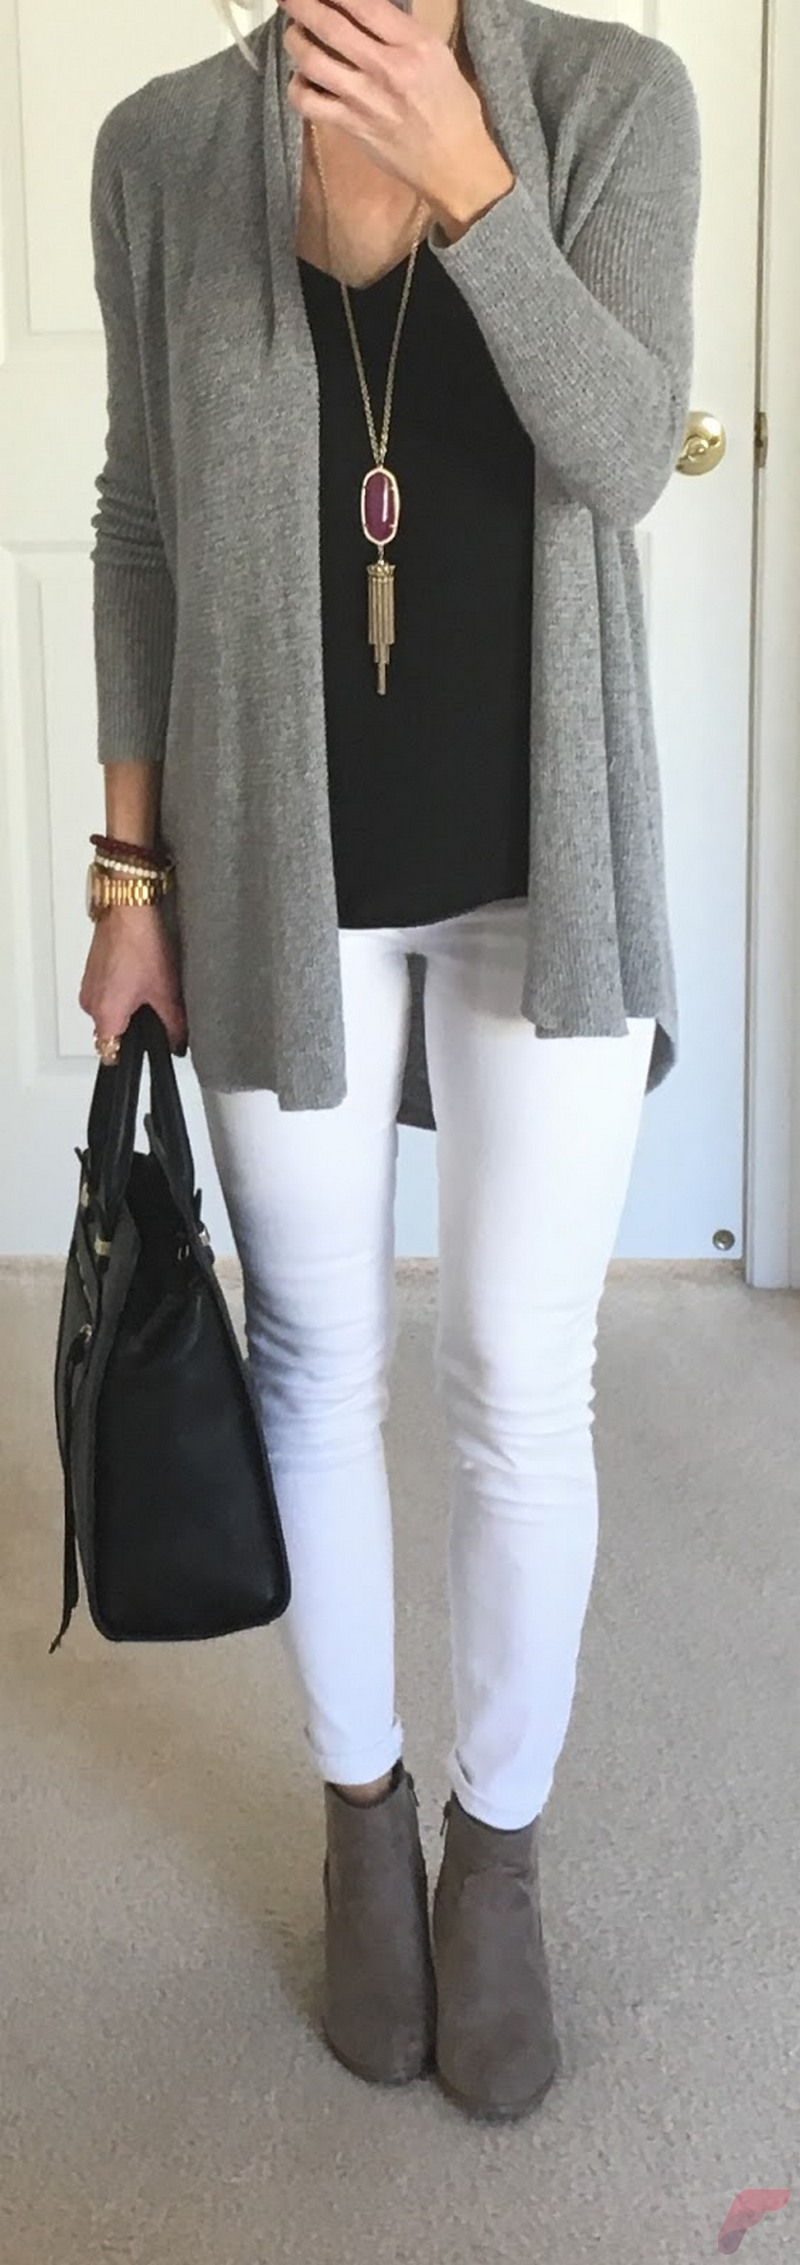 Women cardigan outfit (99)